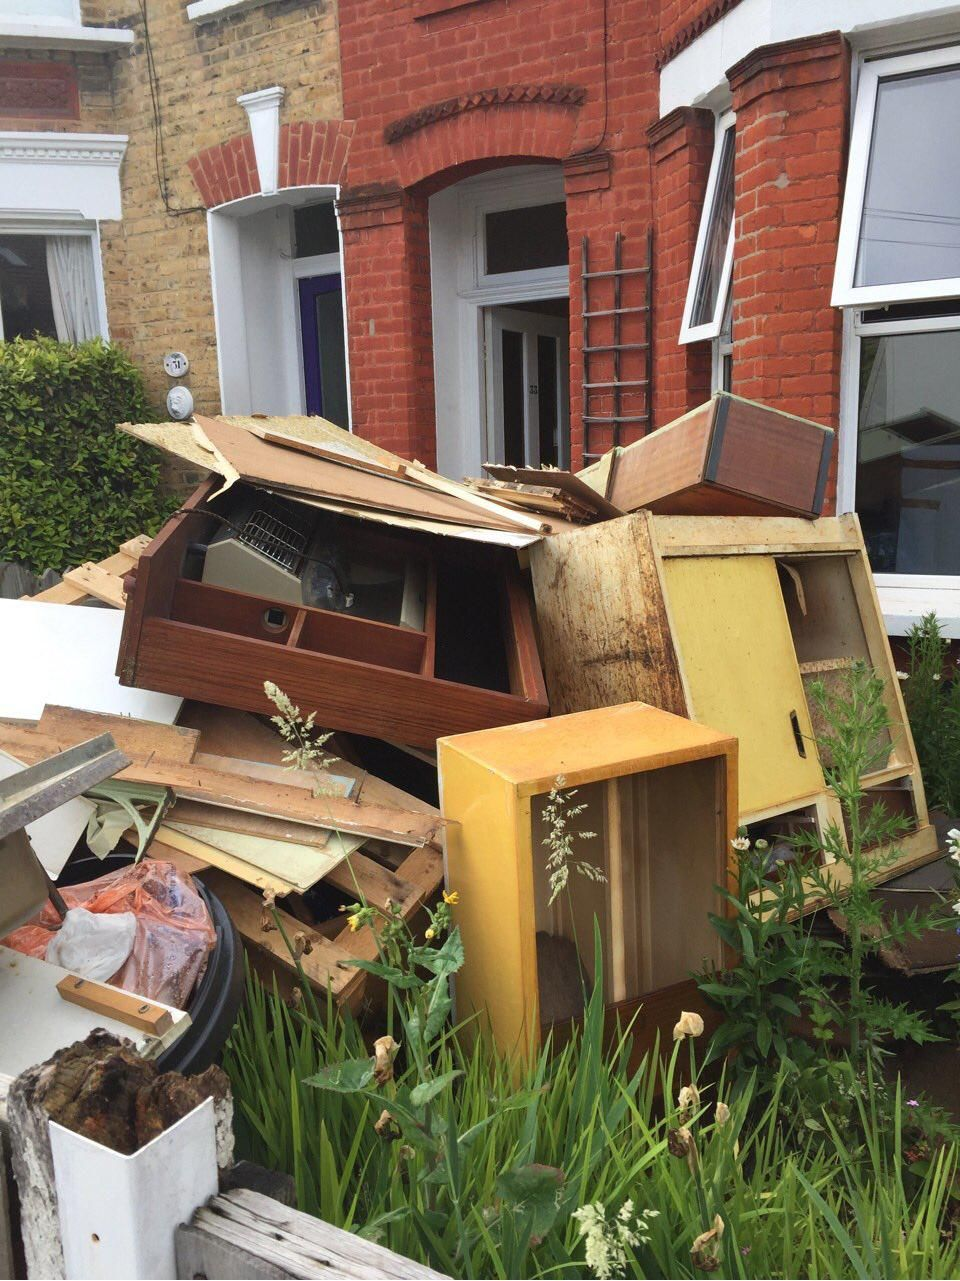 North Sheen garden waste removal TW9